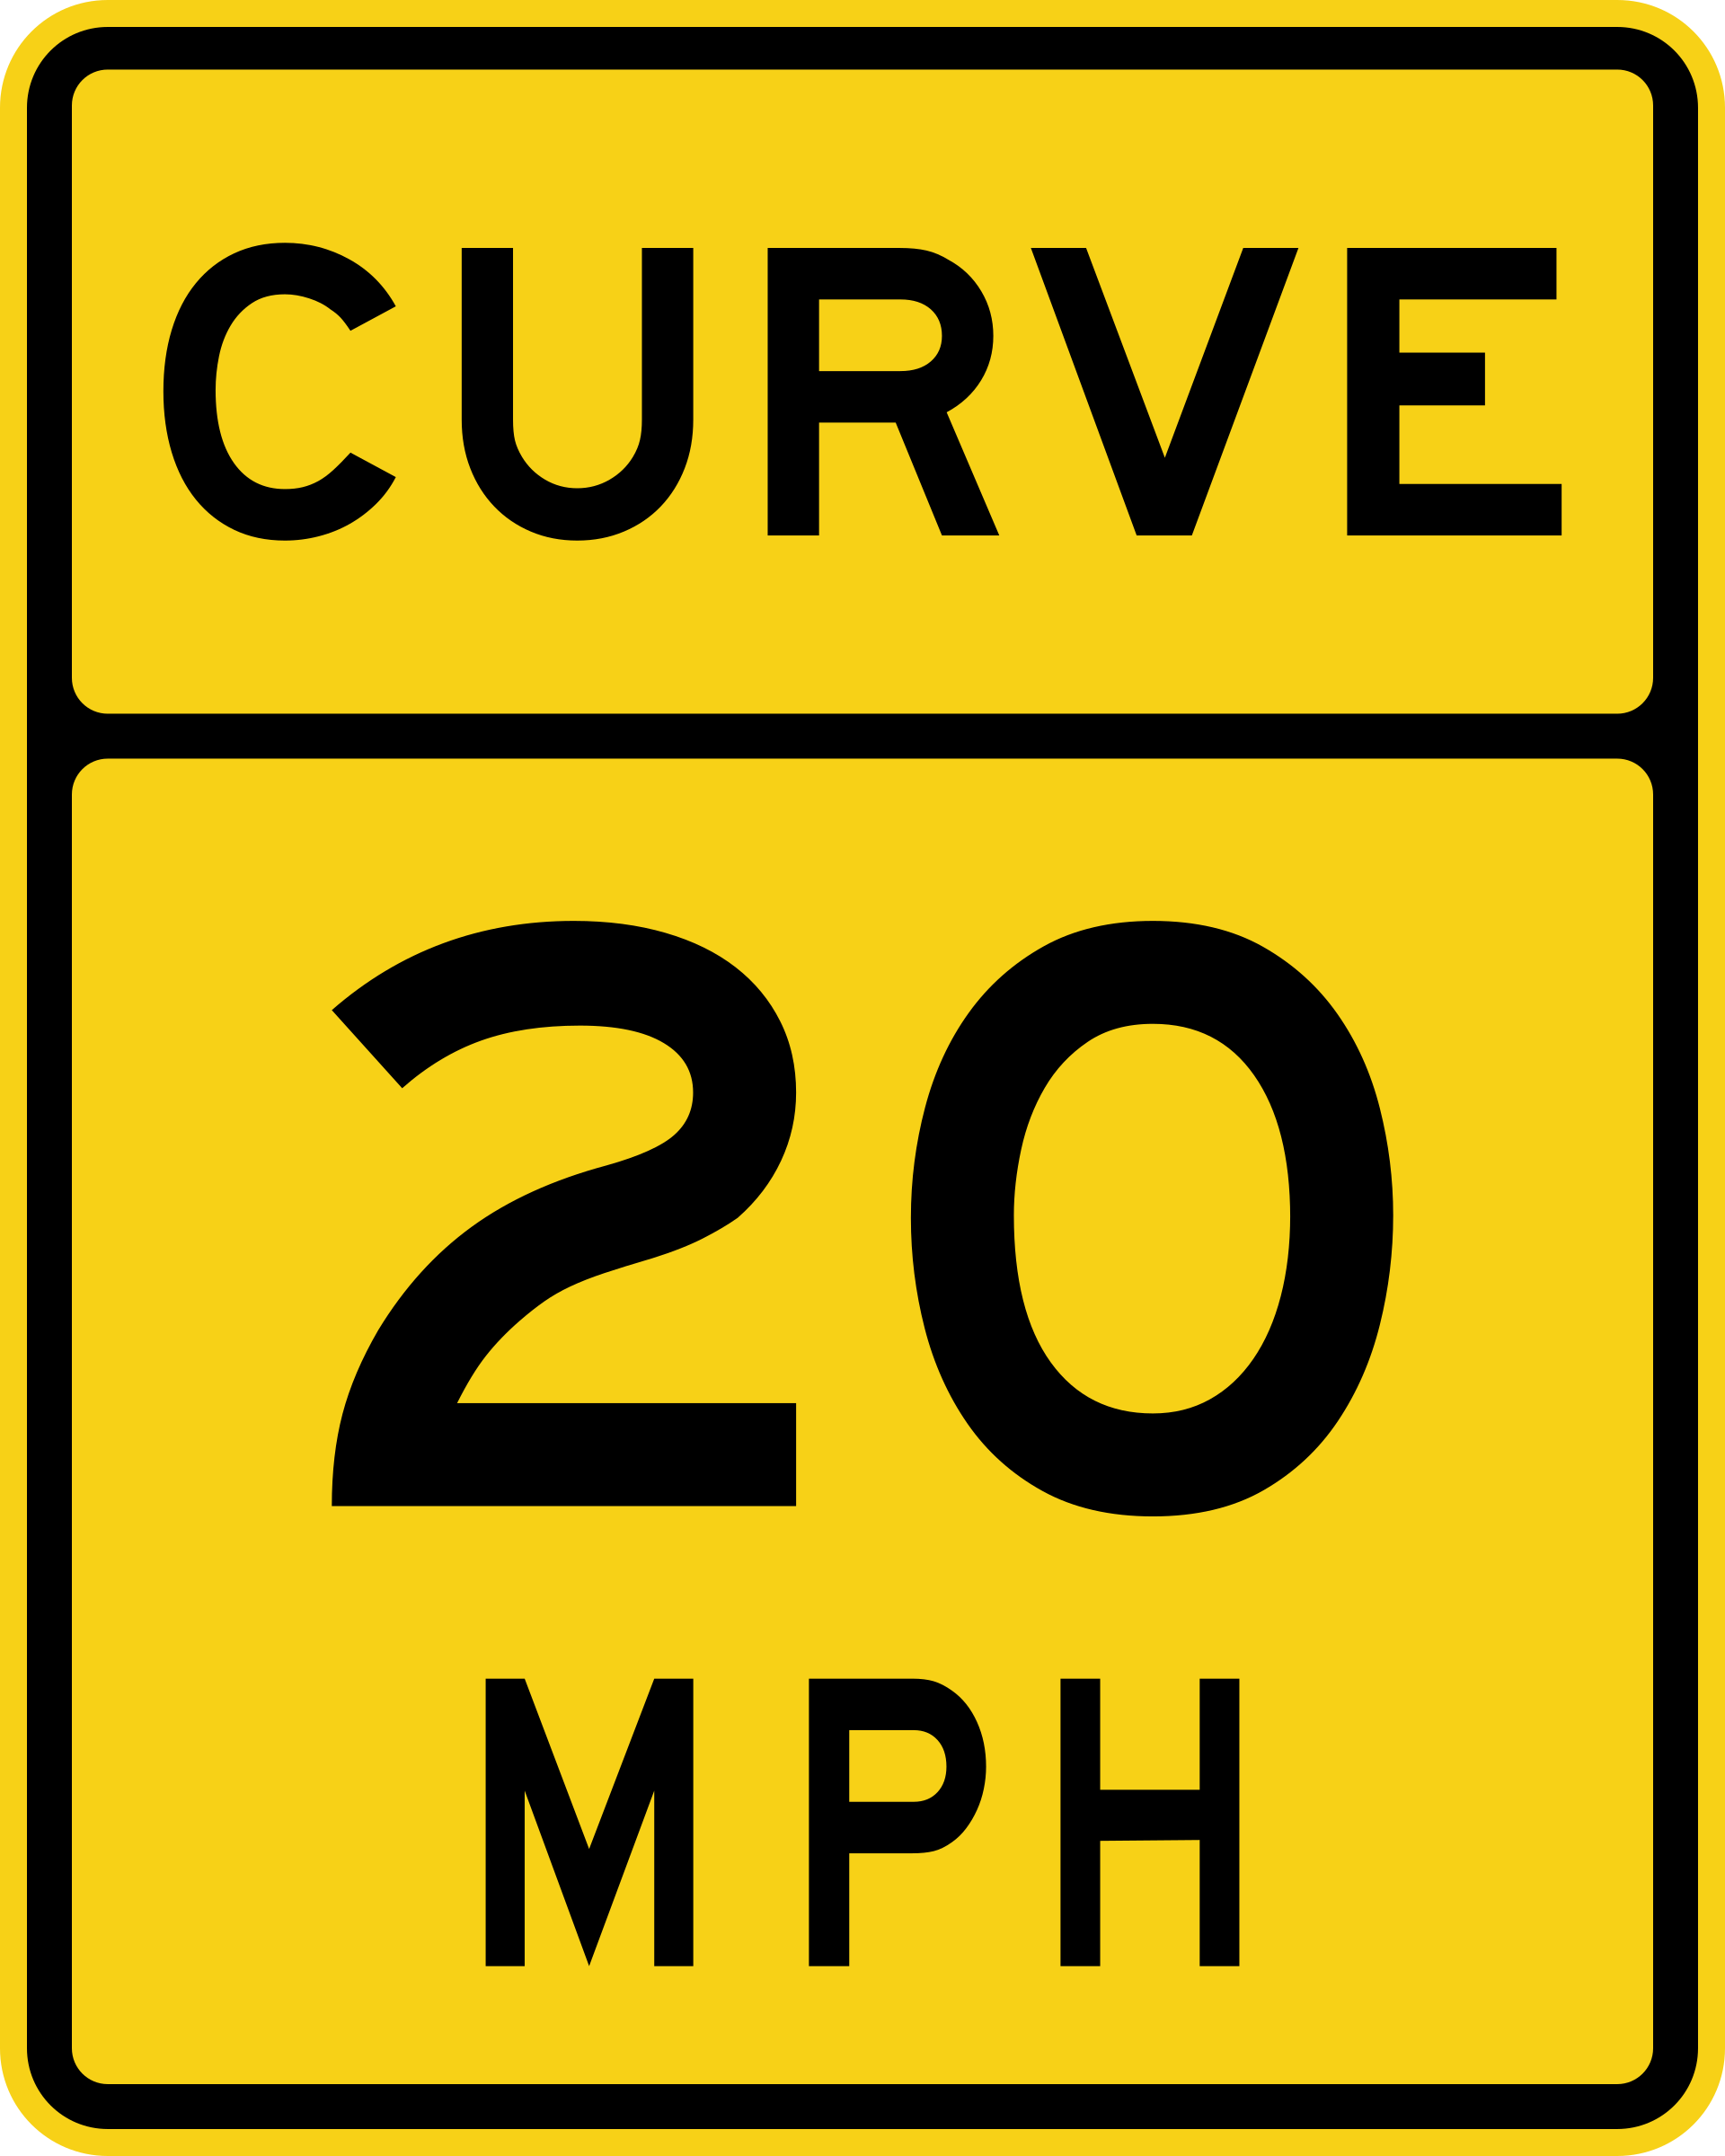 Curve Speed 20 by Rfc1394